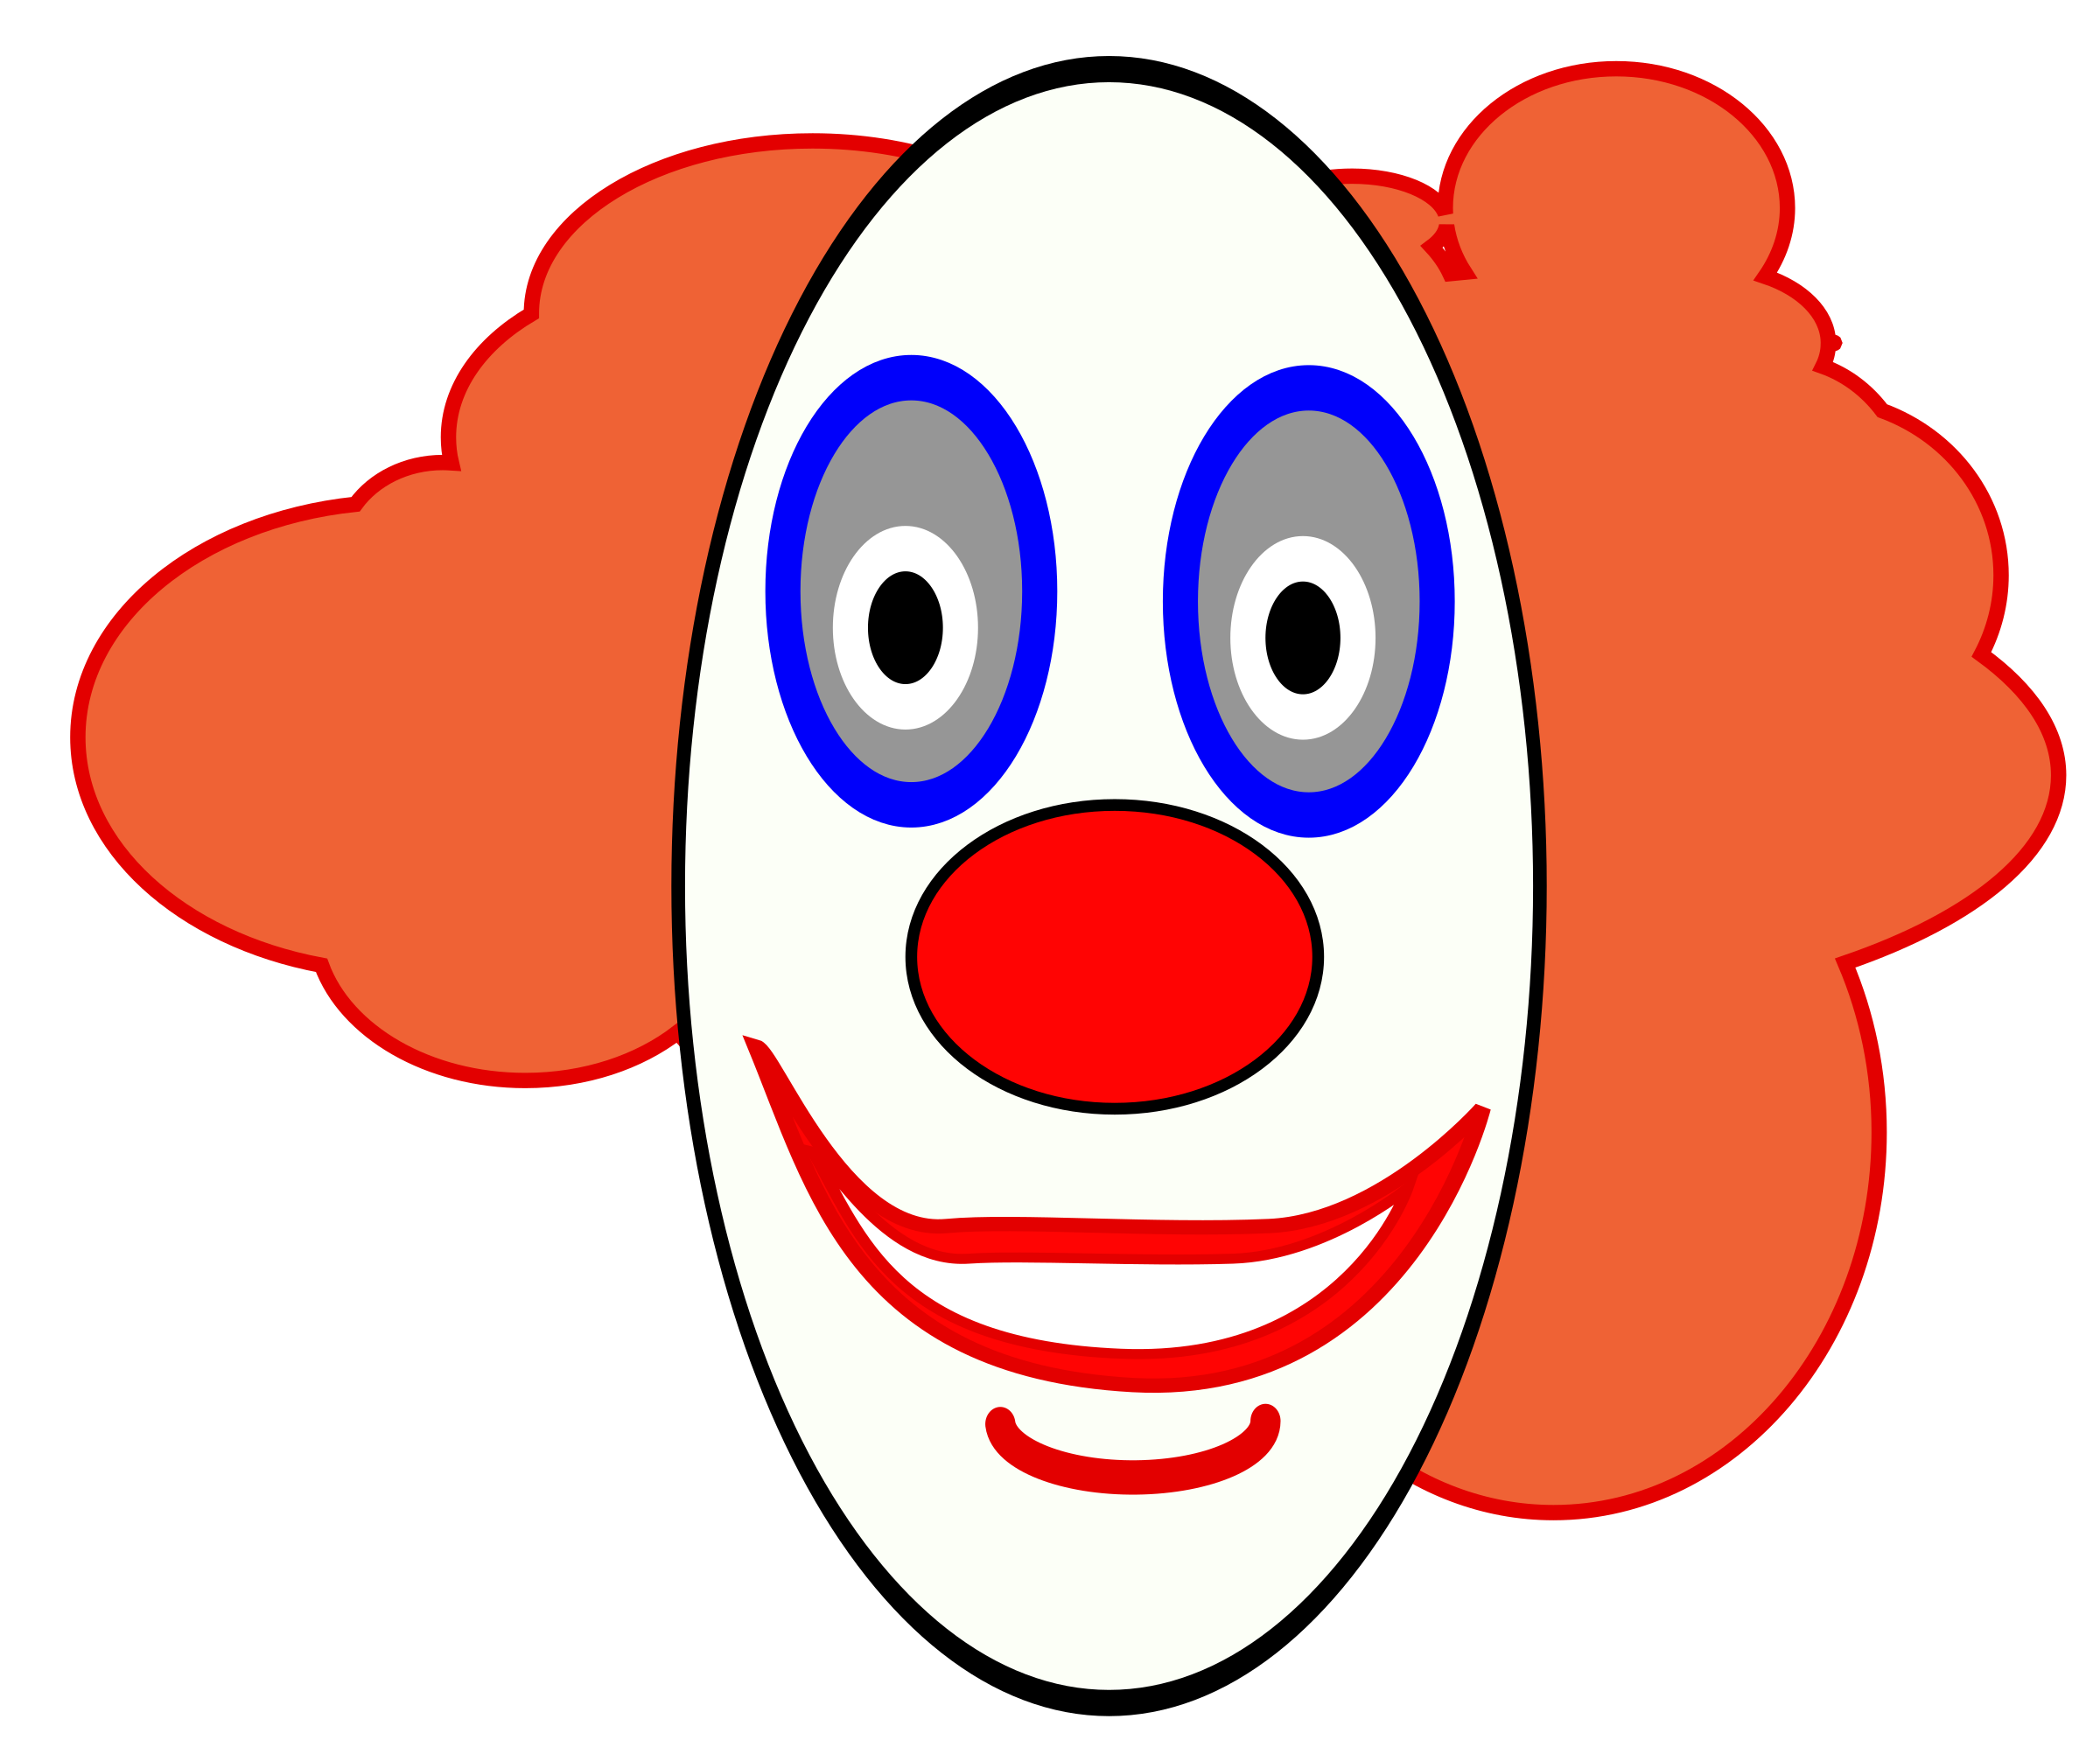 Creepy Clown Face by FunDraw_dot_com